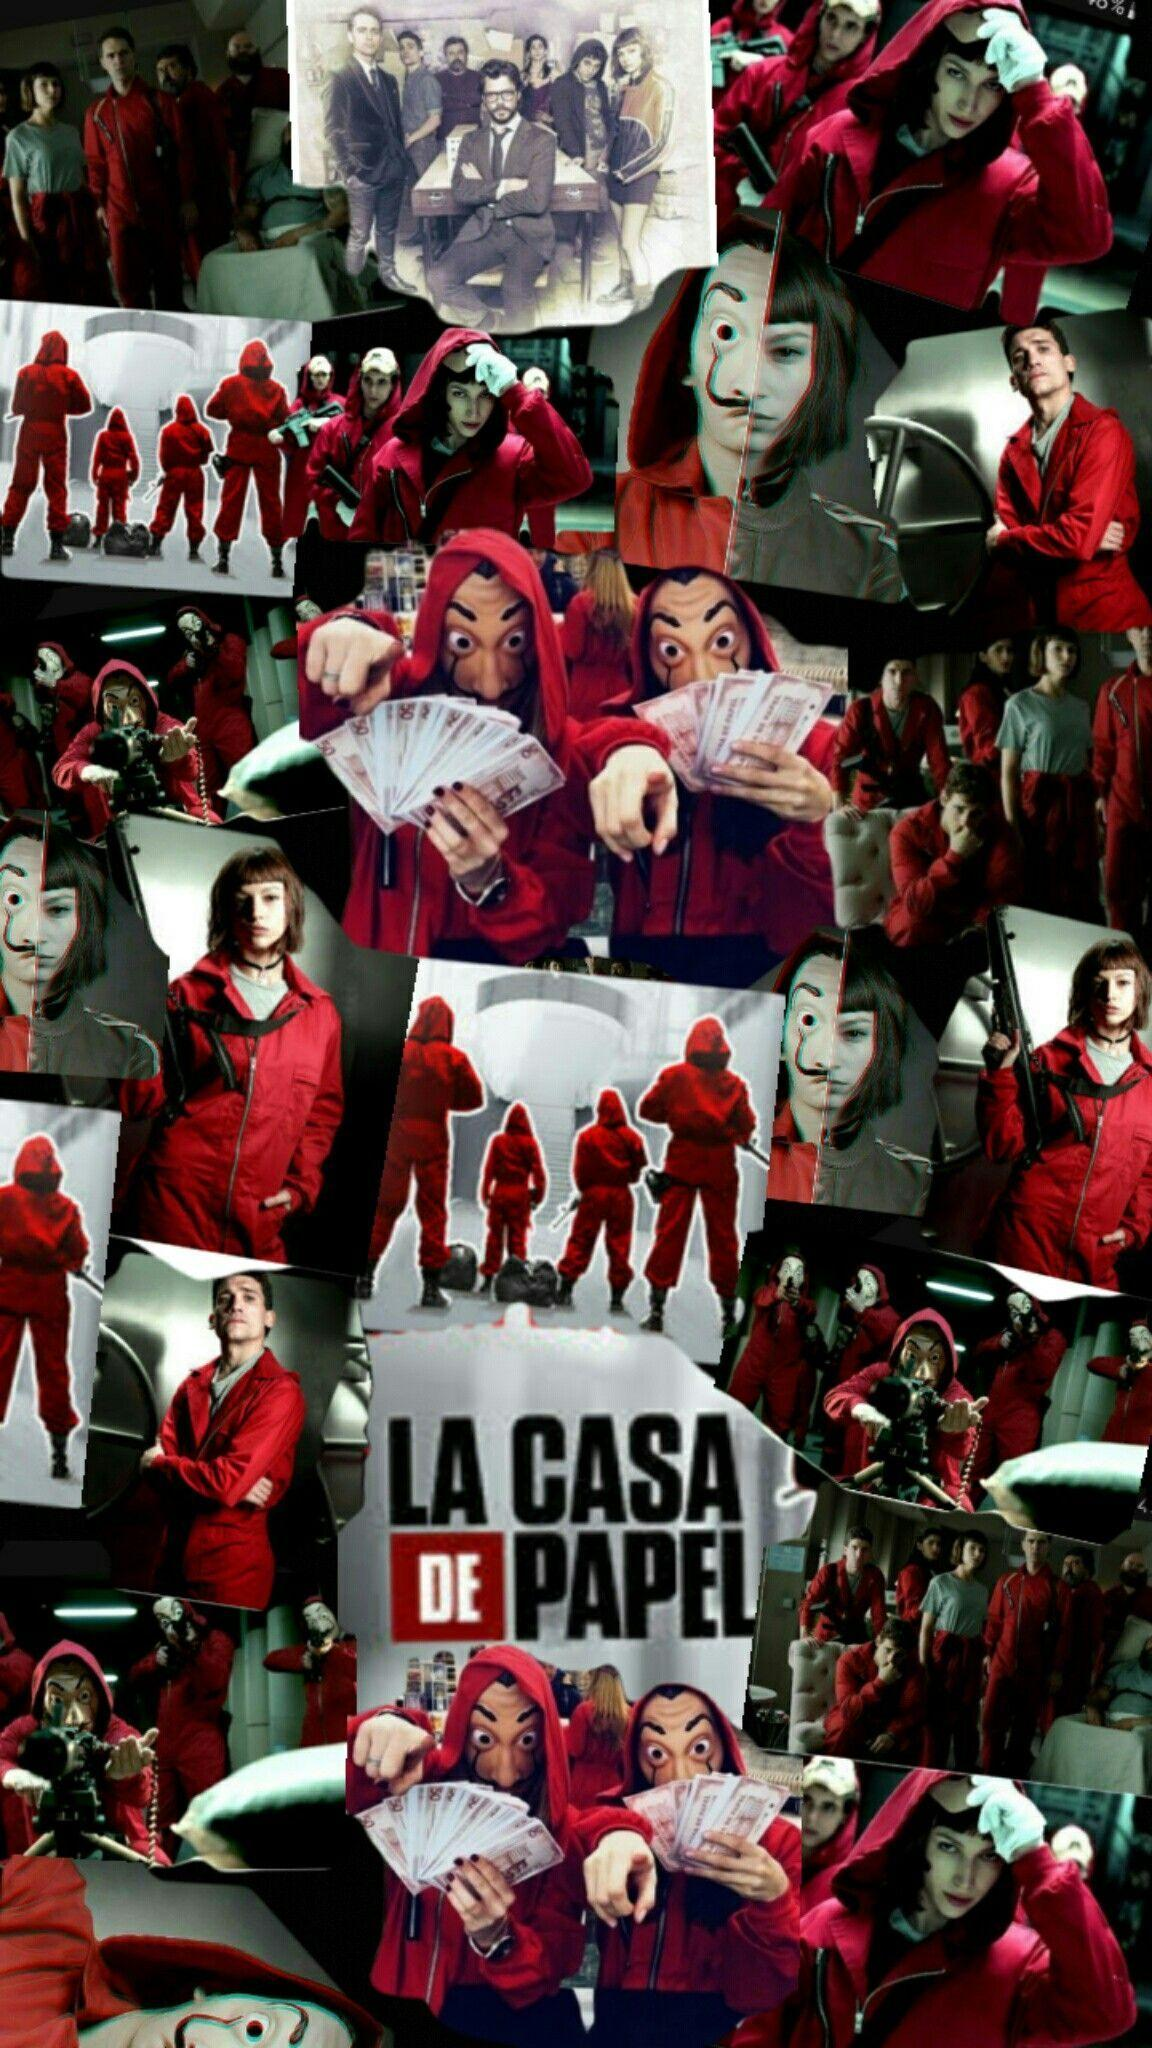 La Casa De Papel 3 Wallpapers Wallpaper Cave